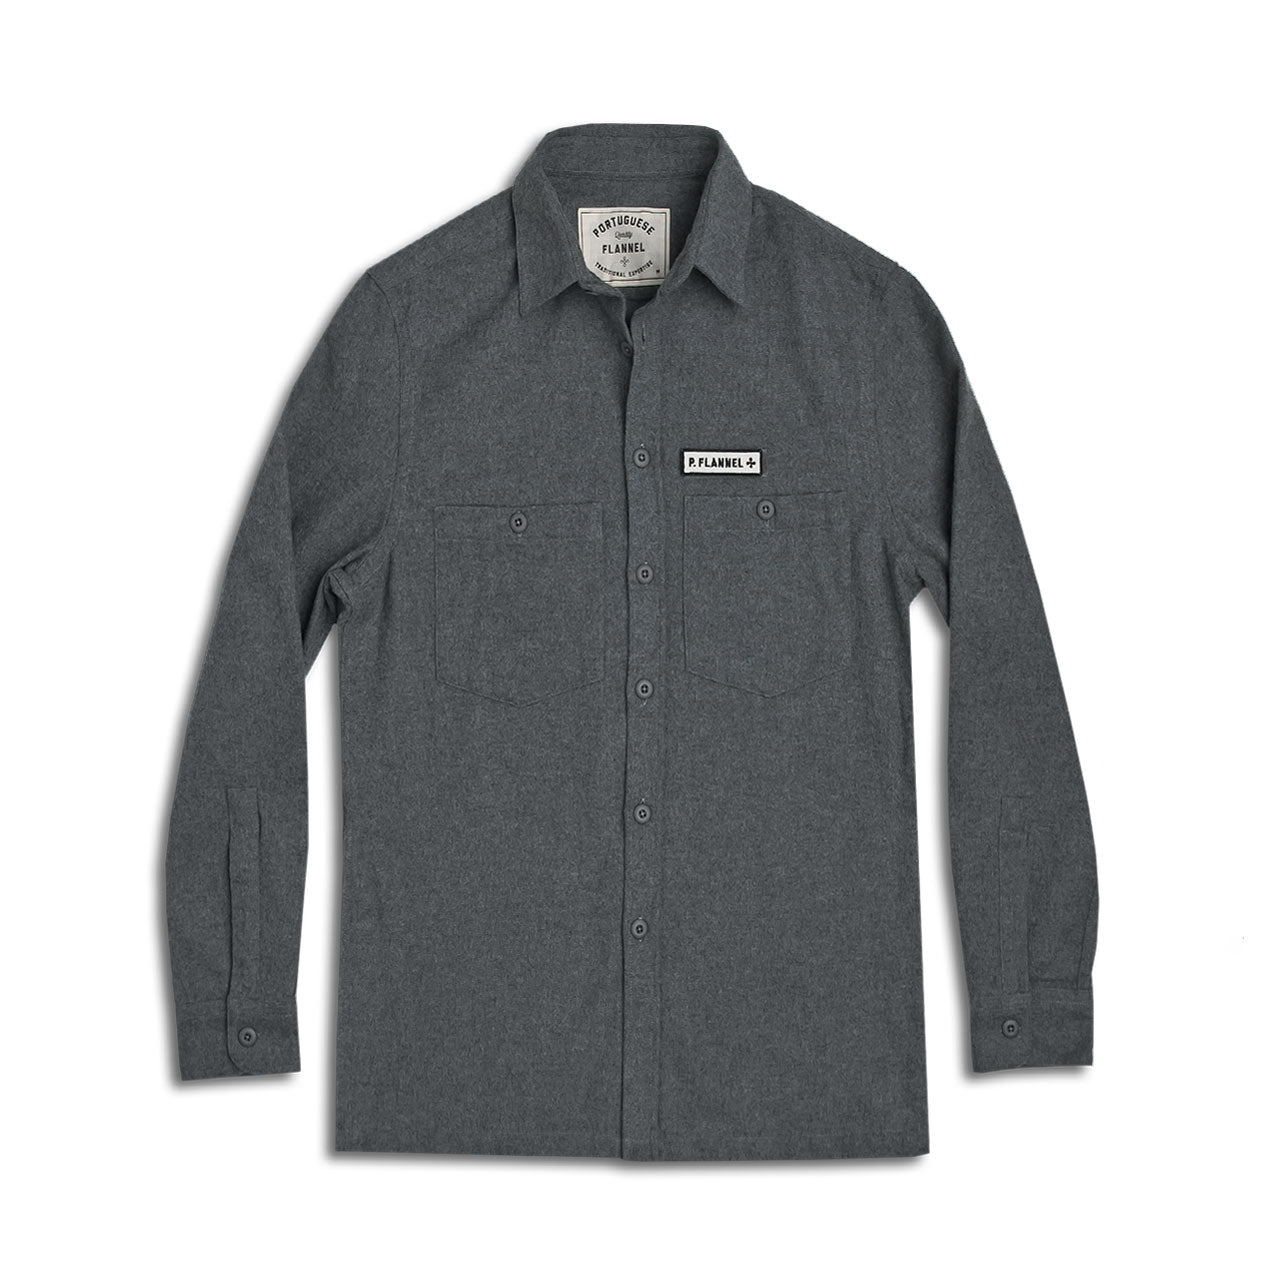 Portuguese Flannel Chemy Overshirt